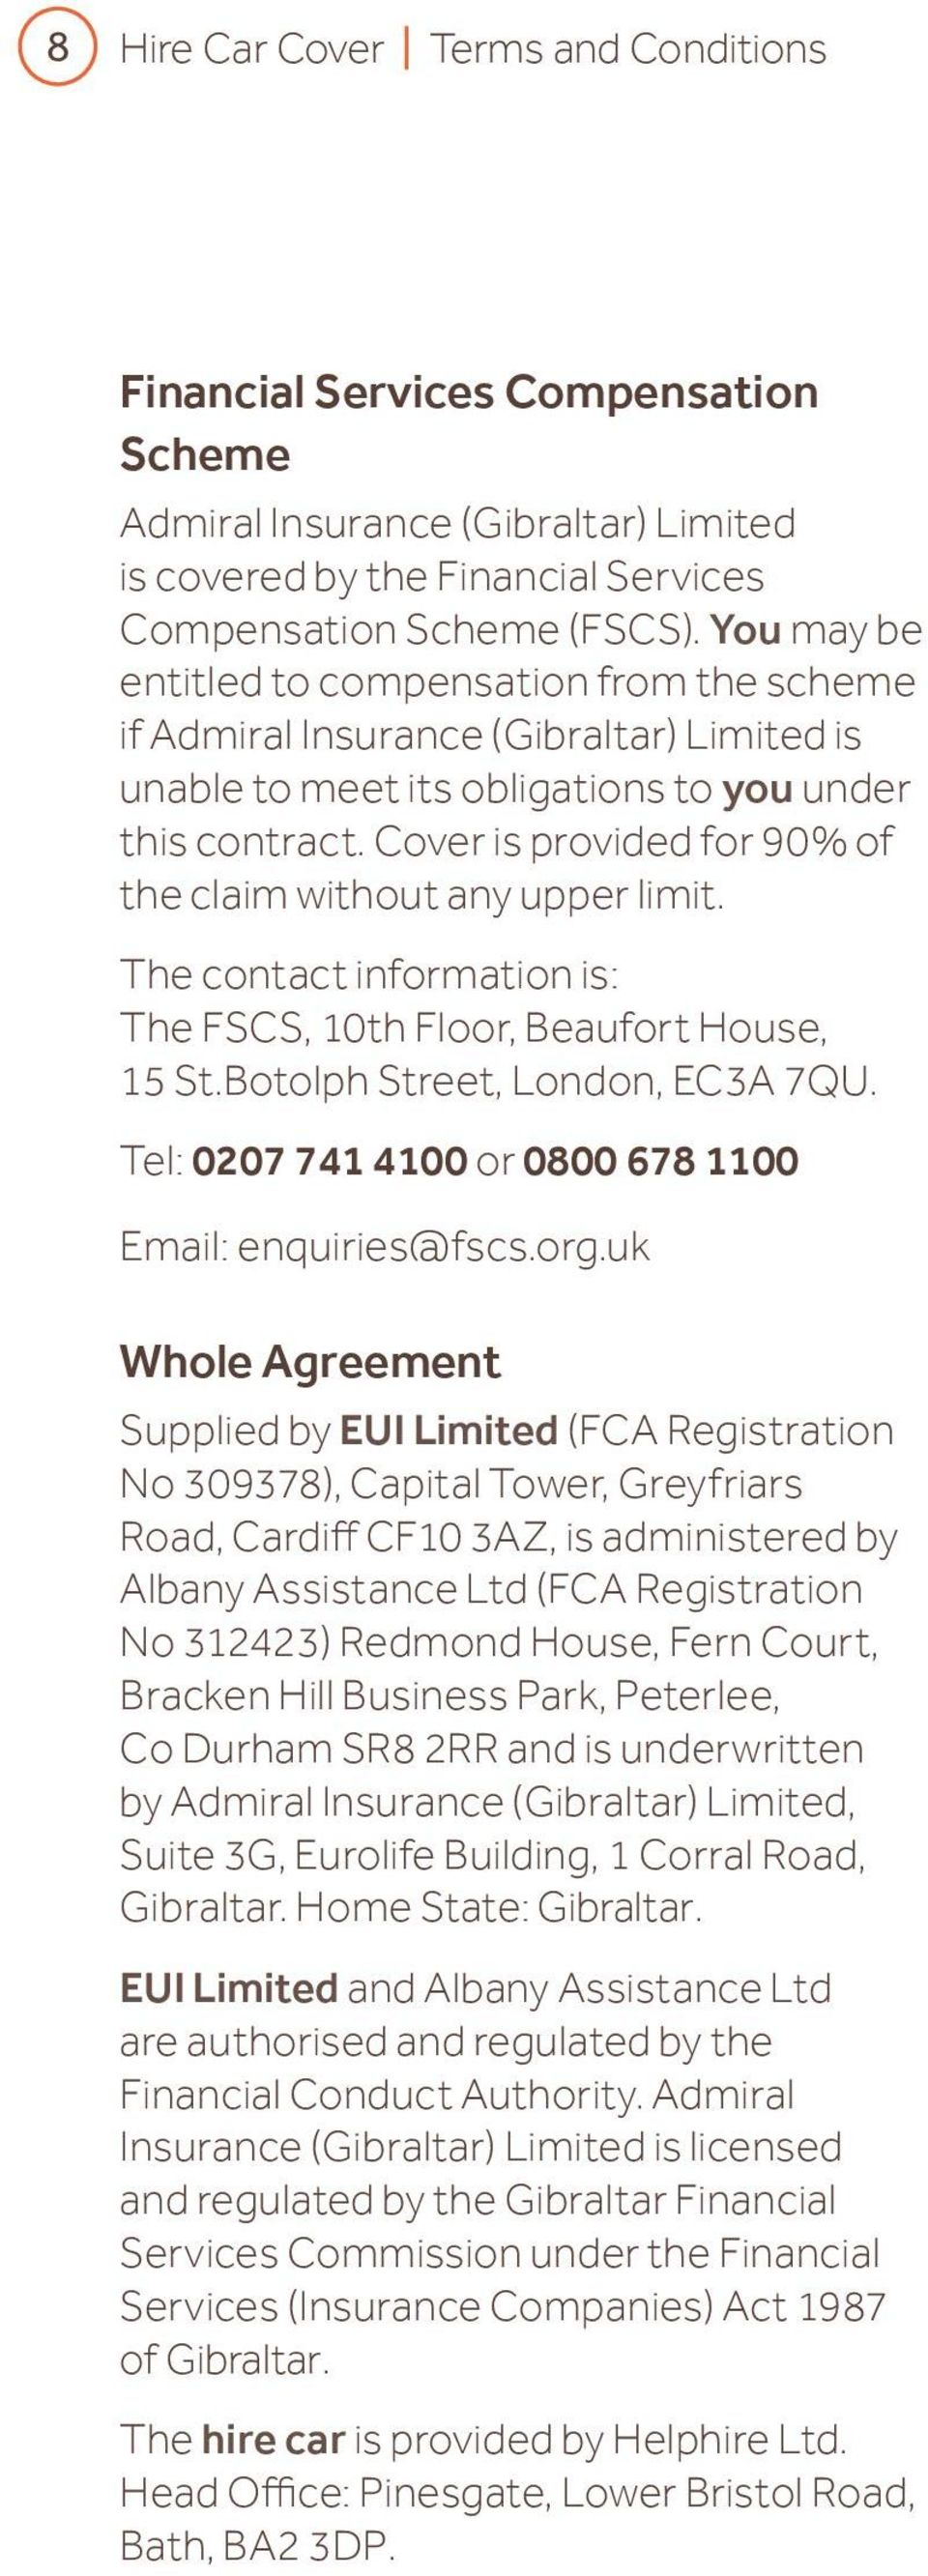 Cover is provided for 90% of the claim without any upper limit. The contact information is: The FSCS, 10th Floor, Beaufort House, 15 St.Botolph Street, London, EC3A 7QU.